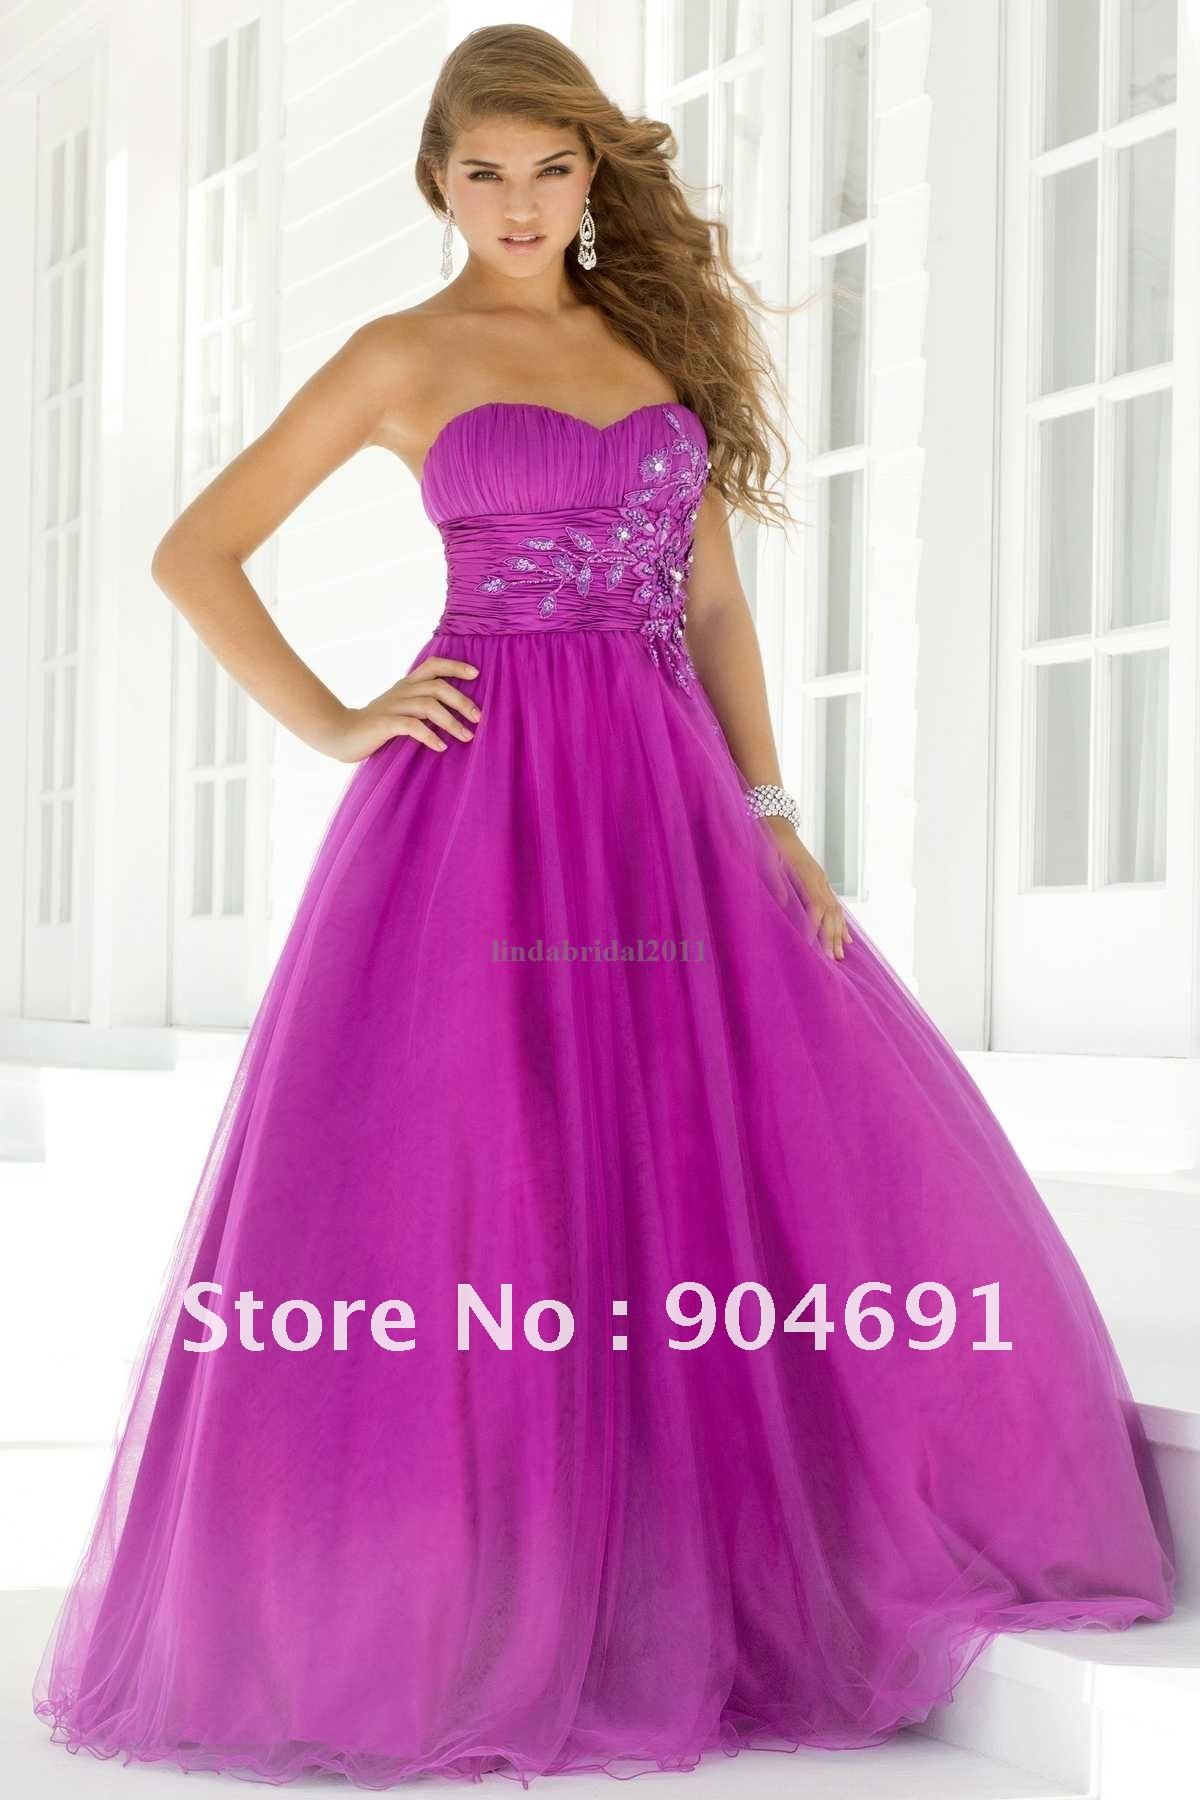 100 Gurantee Strapless Sweetheart Purple Green Organza